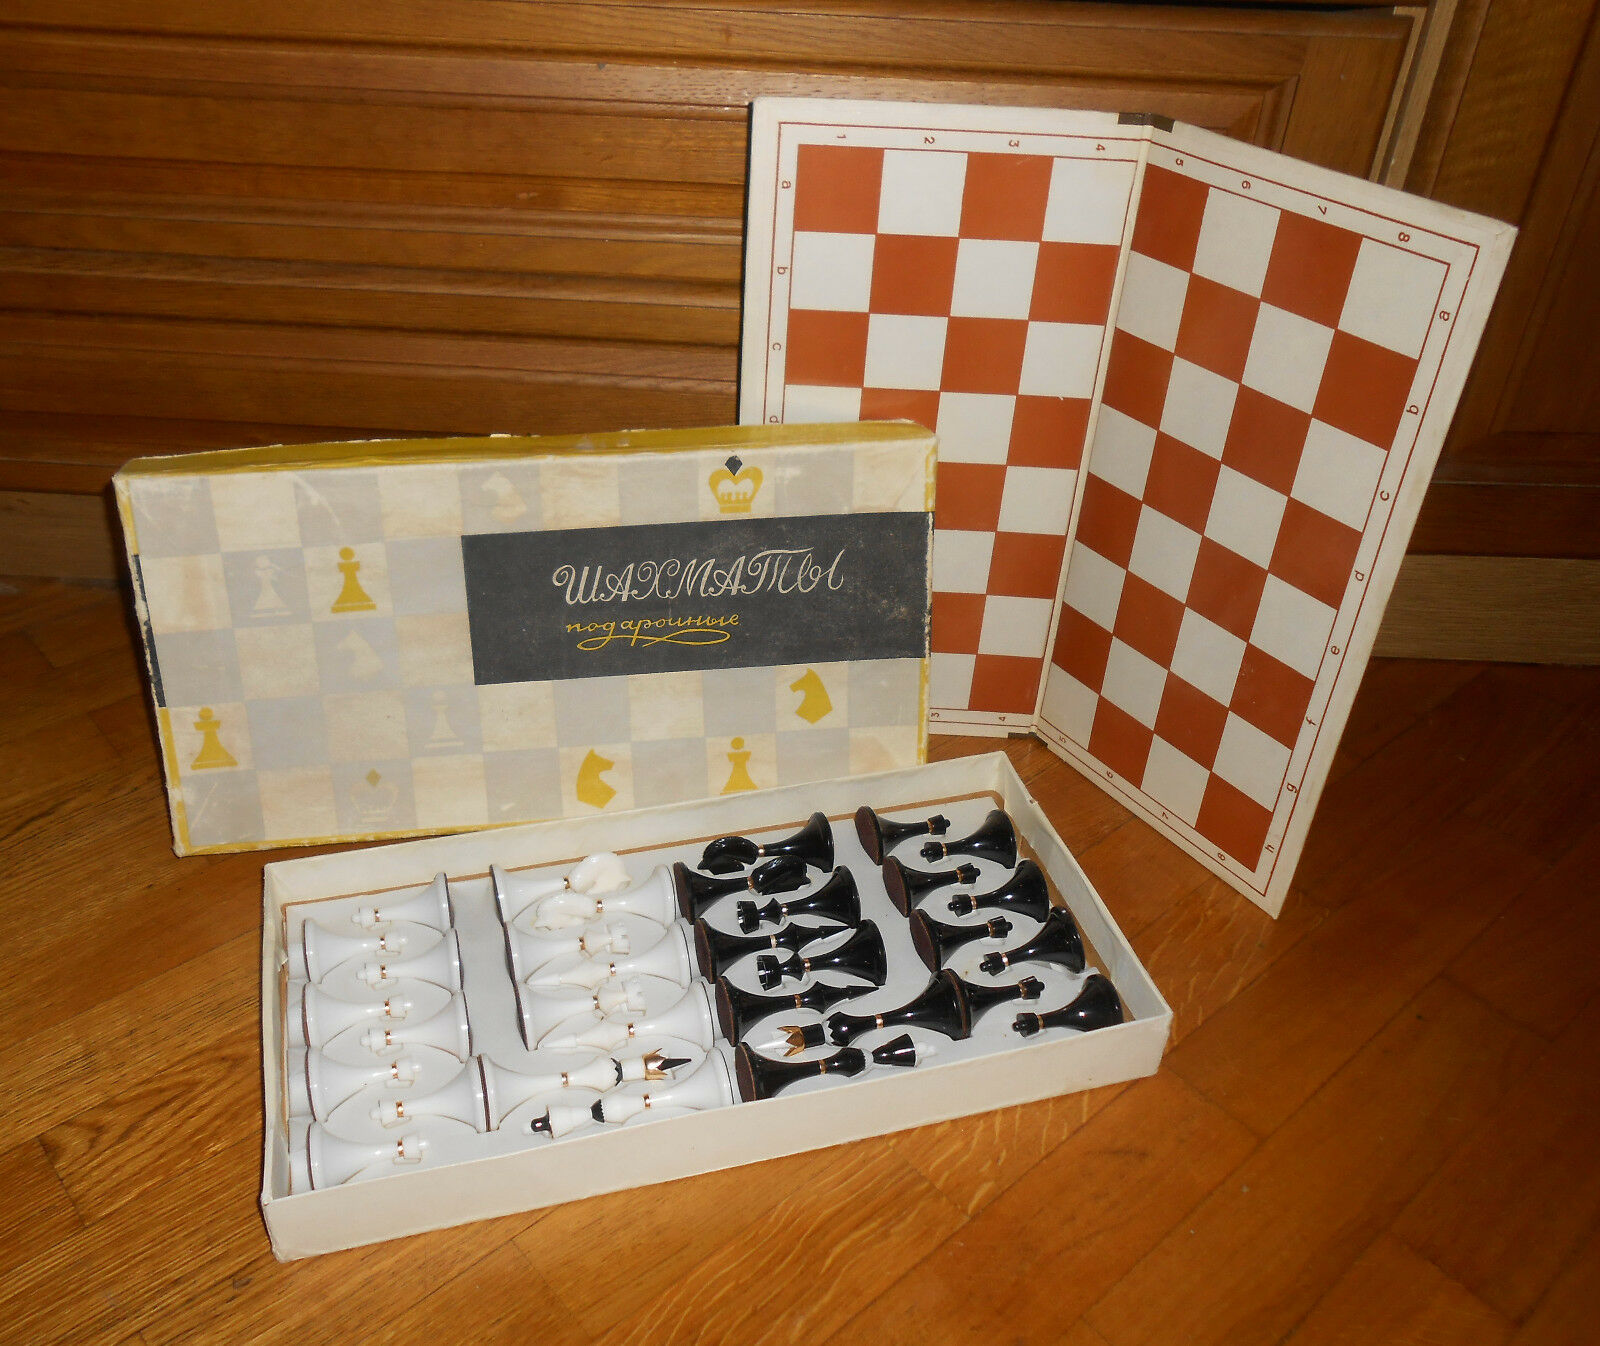 RARE Russian original vintage Soviet USSR plastic chess set and board with box